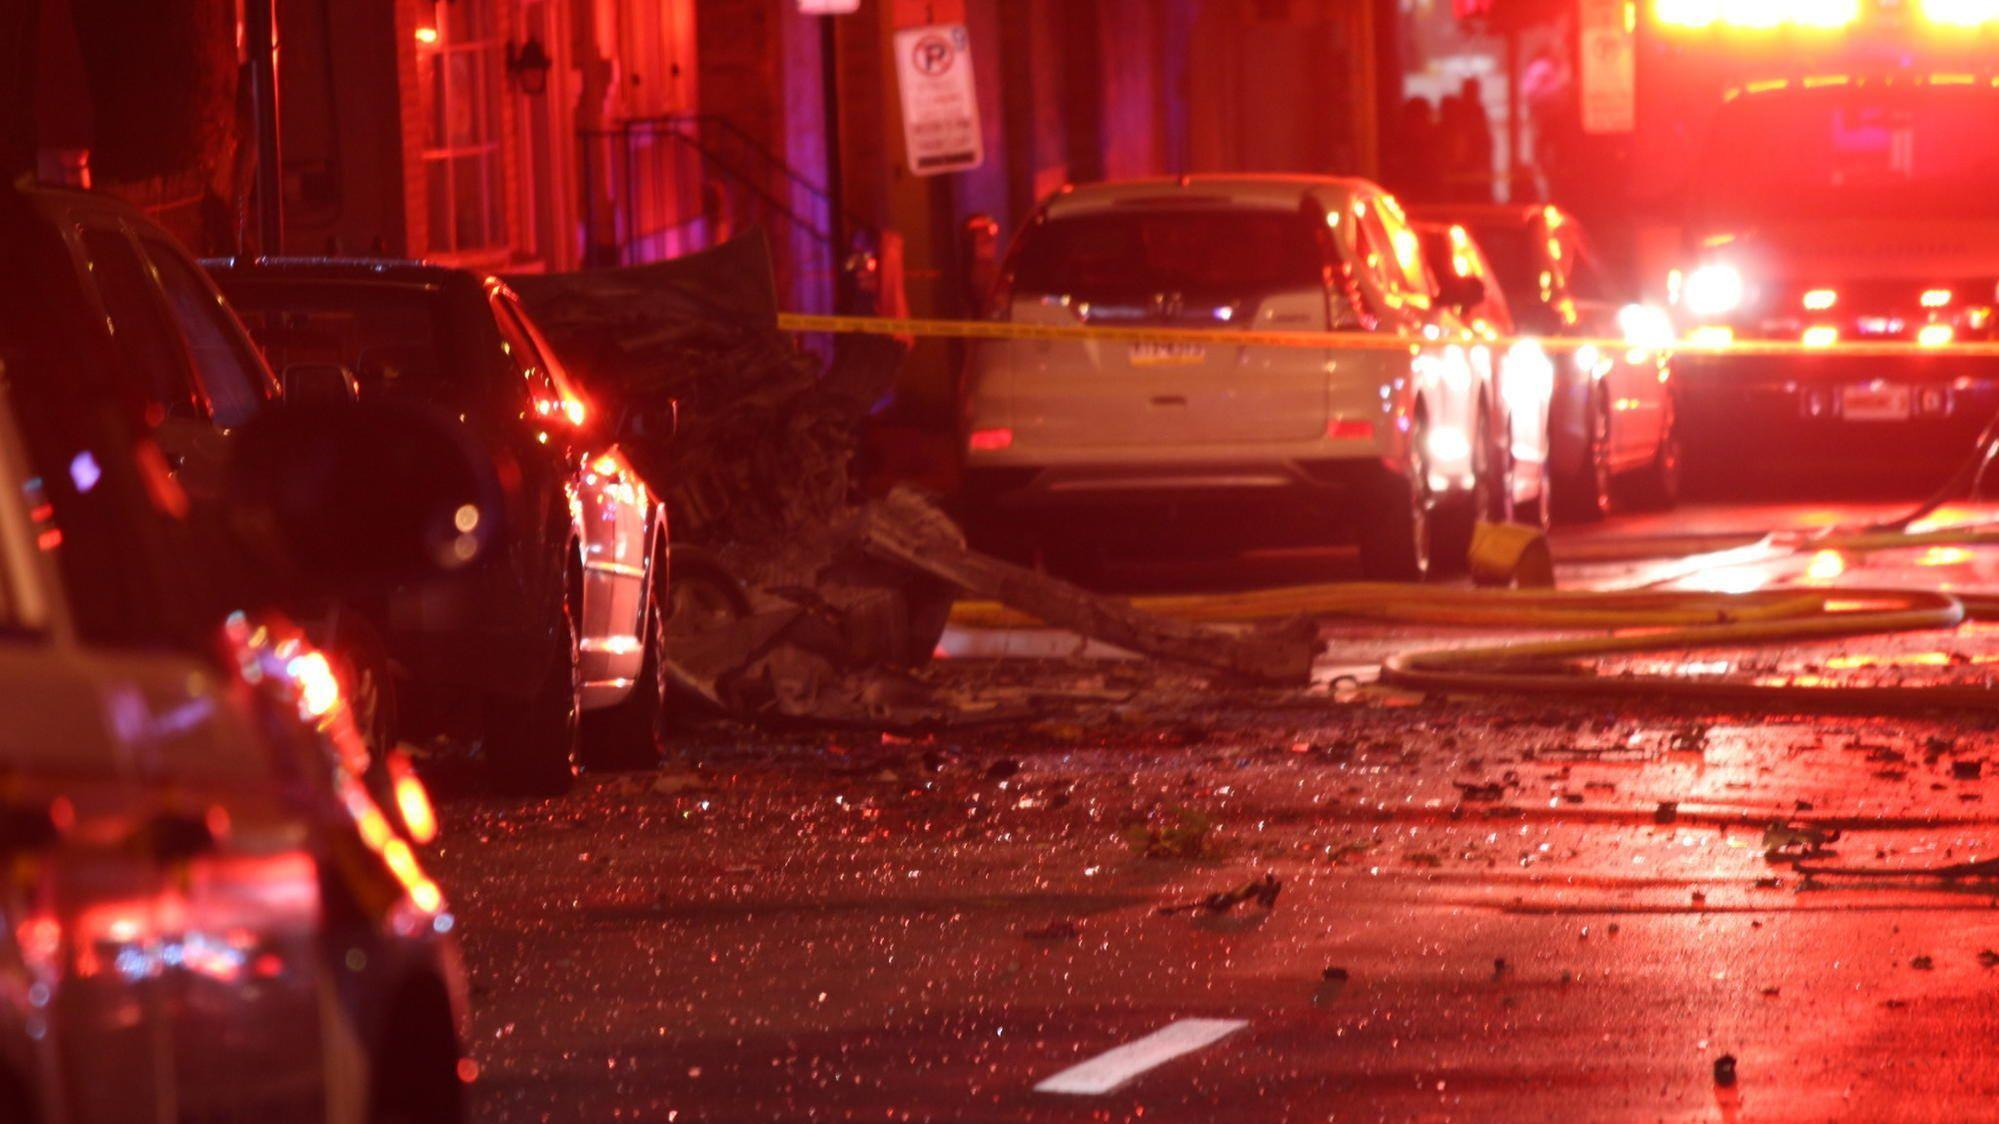 Allentown Car Explosion: 'The Fire Was Crazy'